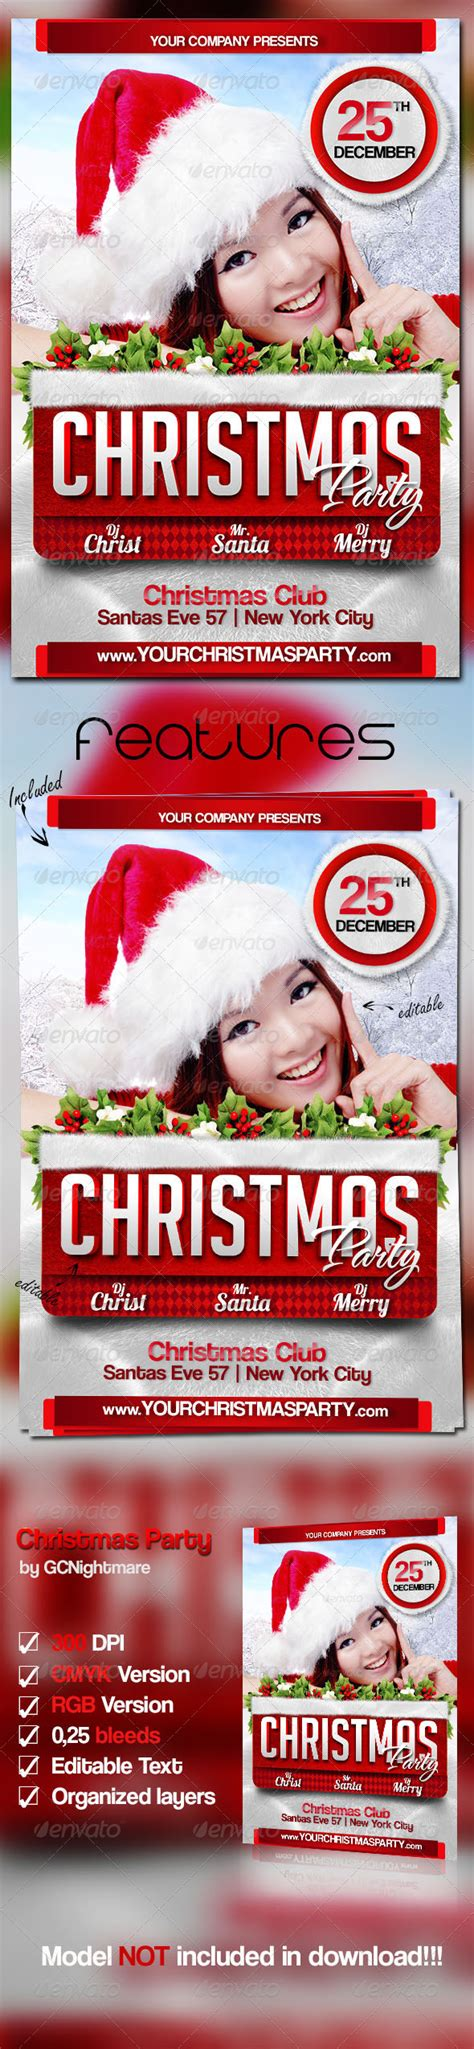 template flyer graphicriver print template graphicriver christmas party flyer